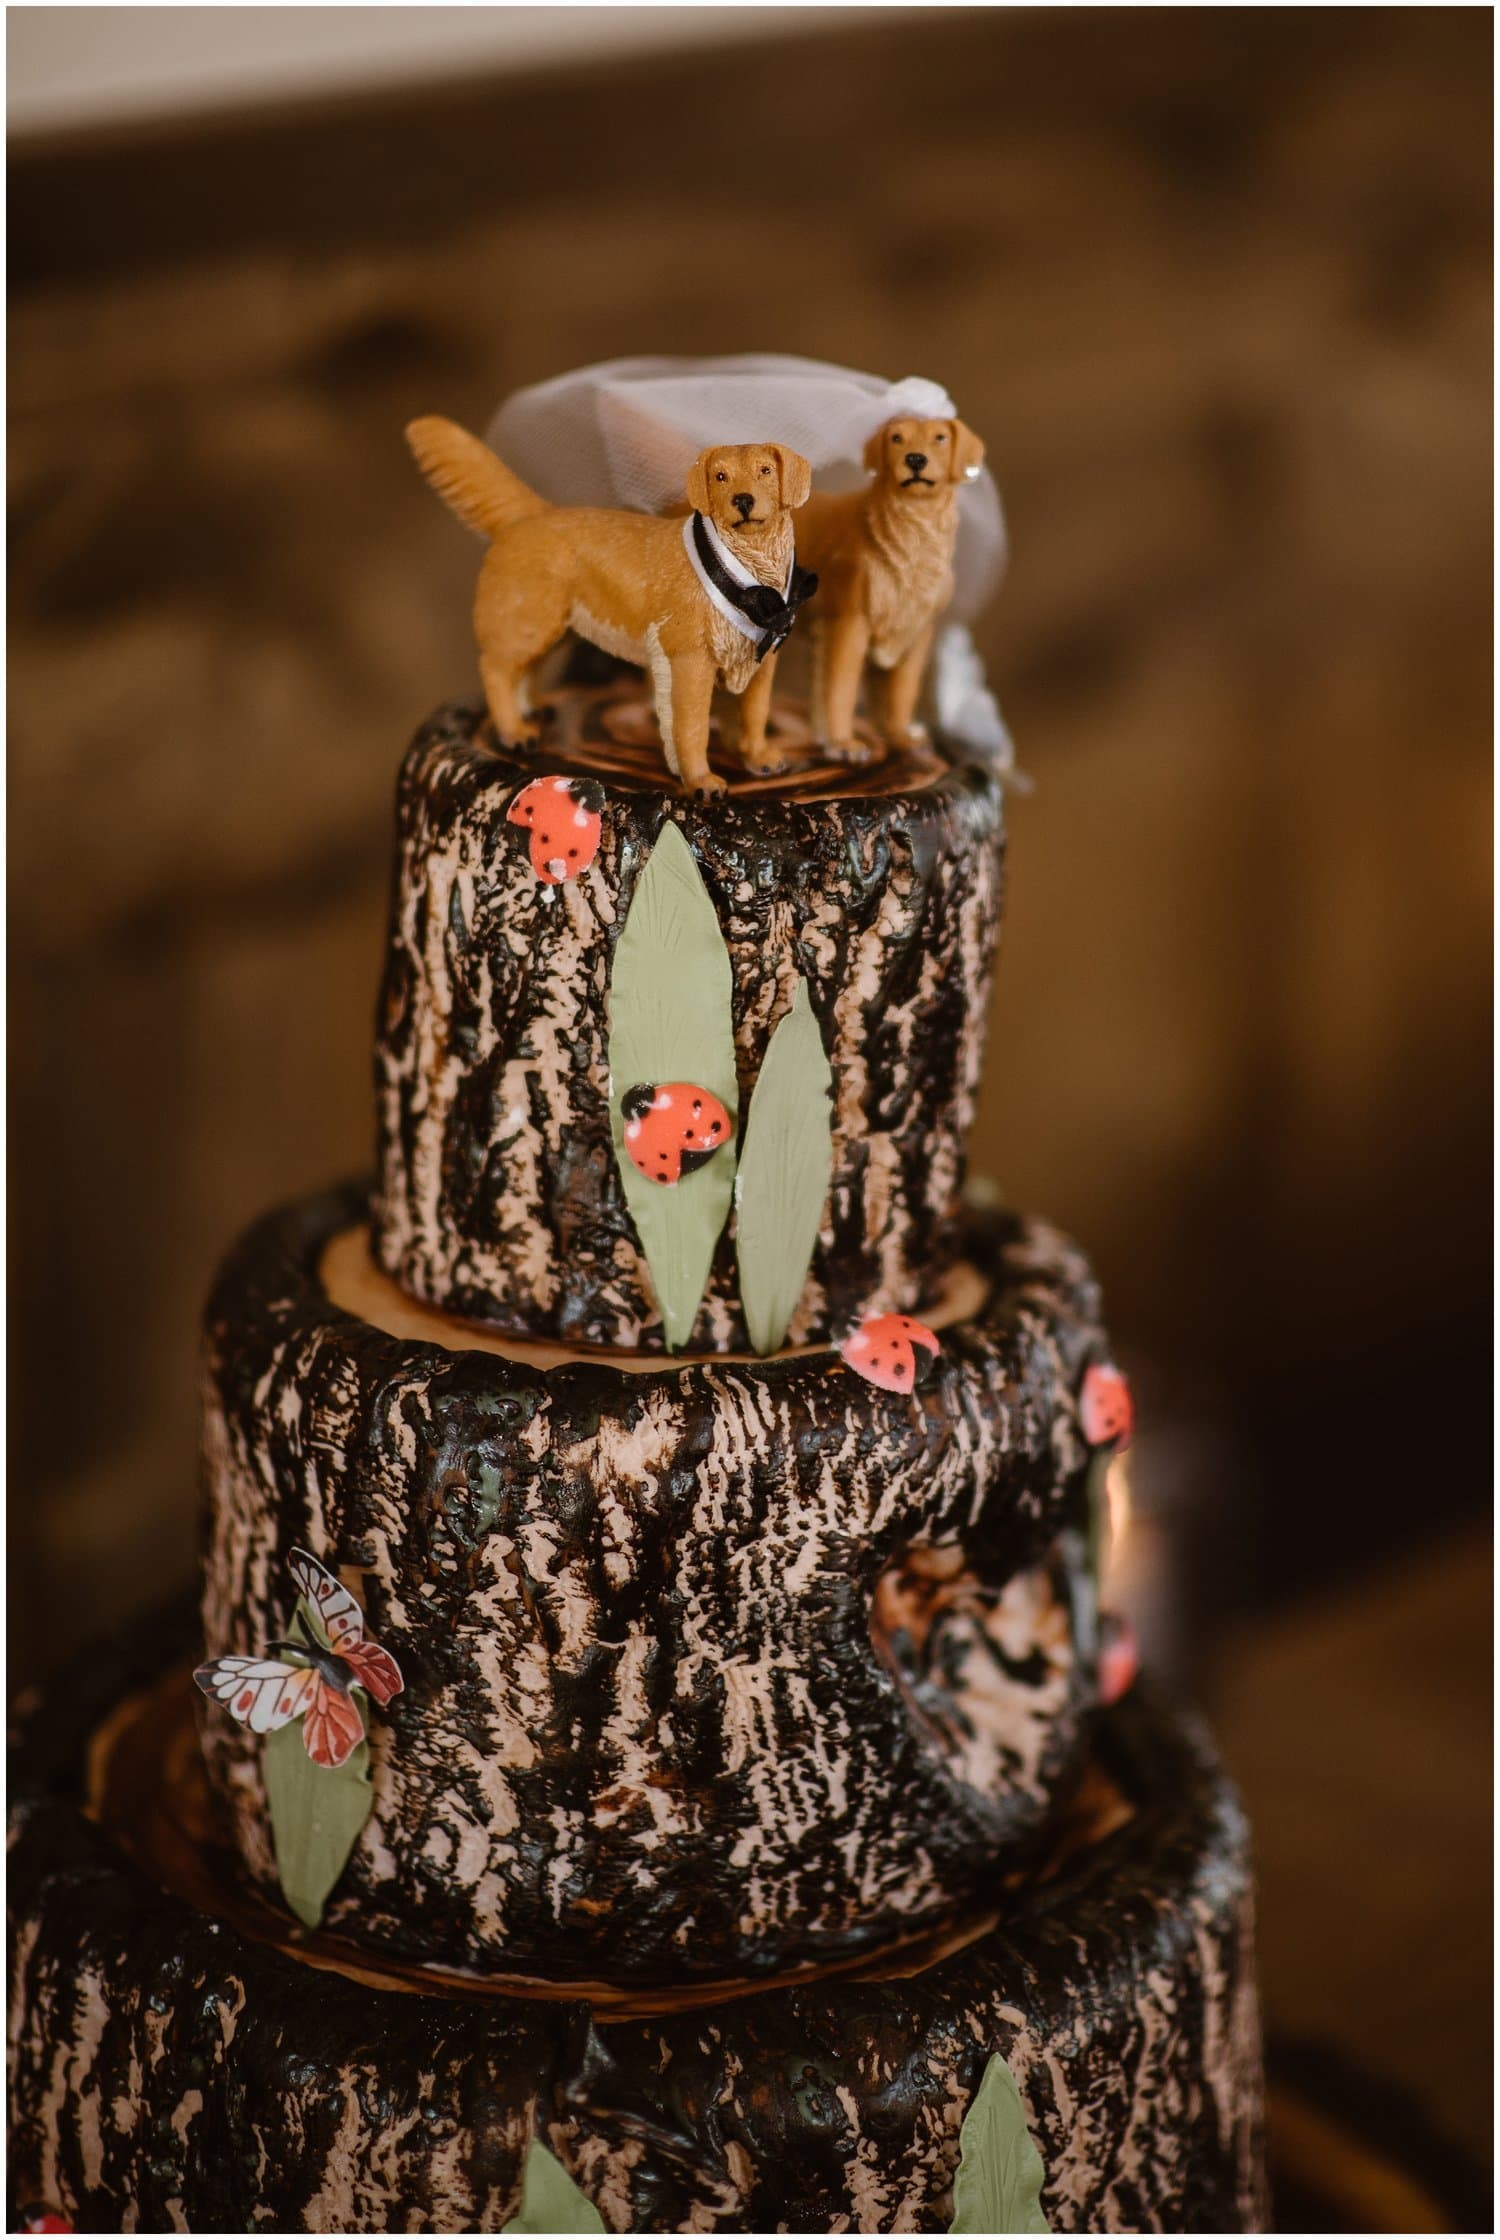 A chocolate wedding cake with a dog topper.